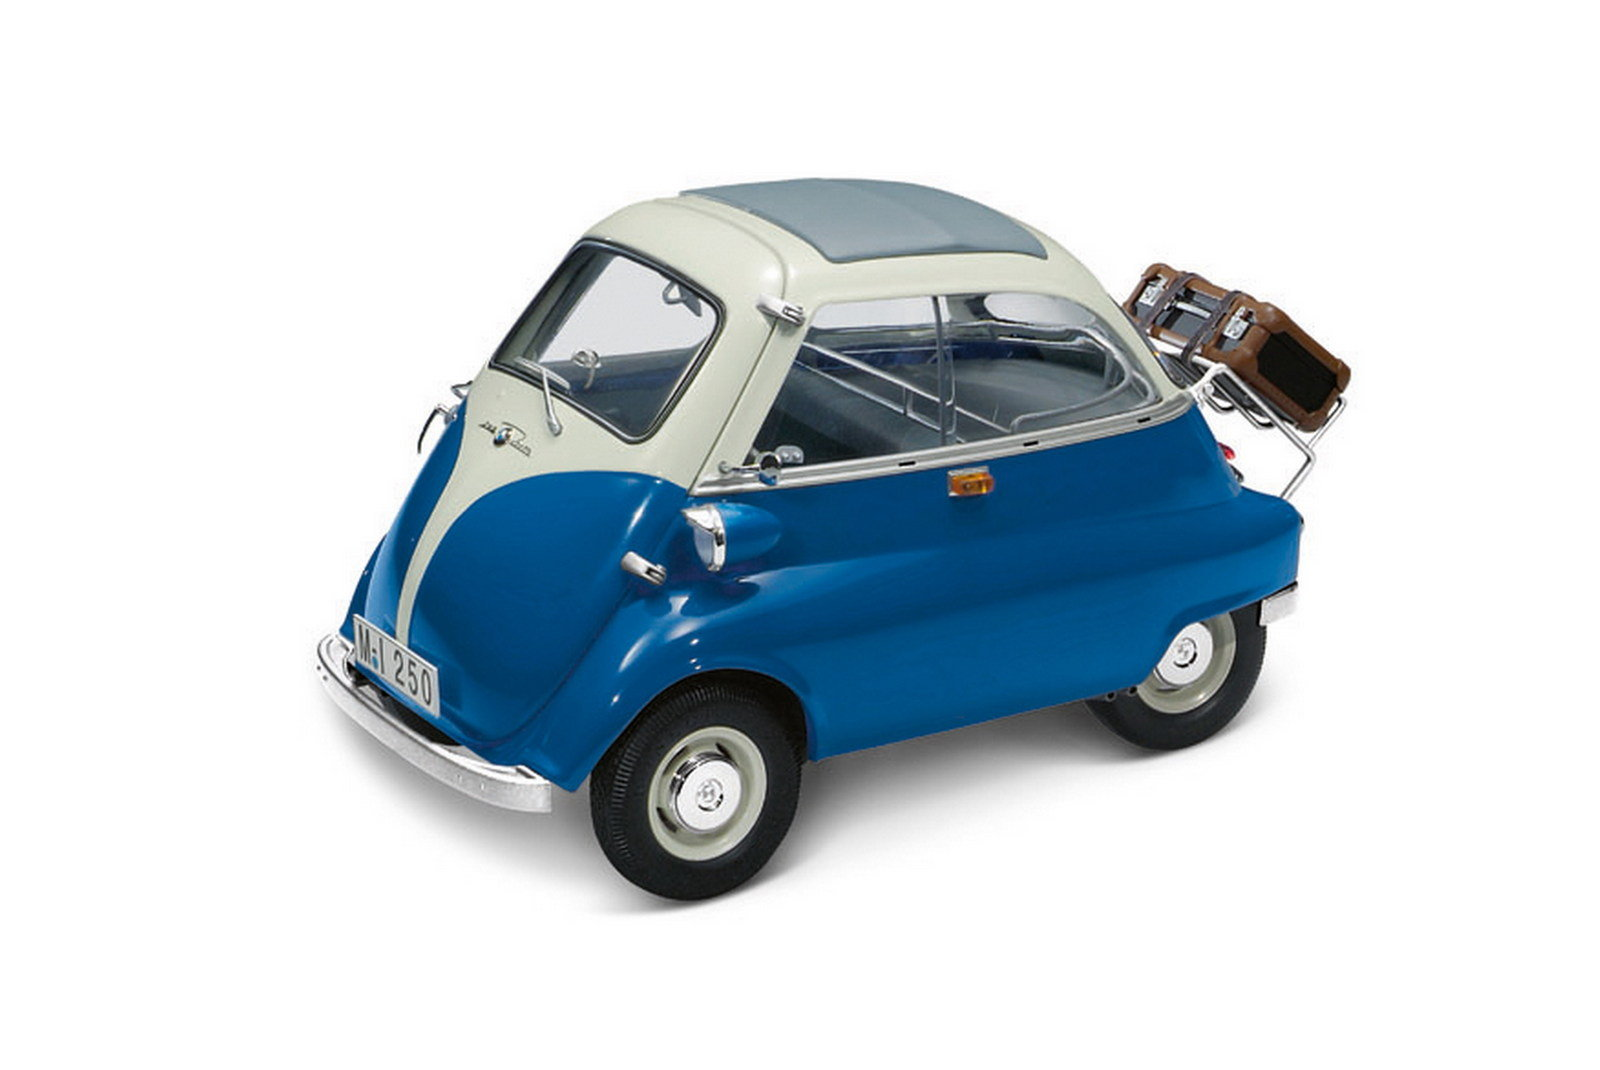 1955 1962 bmw isetta picture 600530 car review top speed. Black Bedroom Furniture Sets. Home Design Ideas